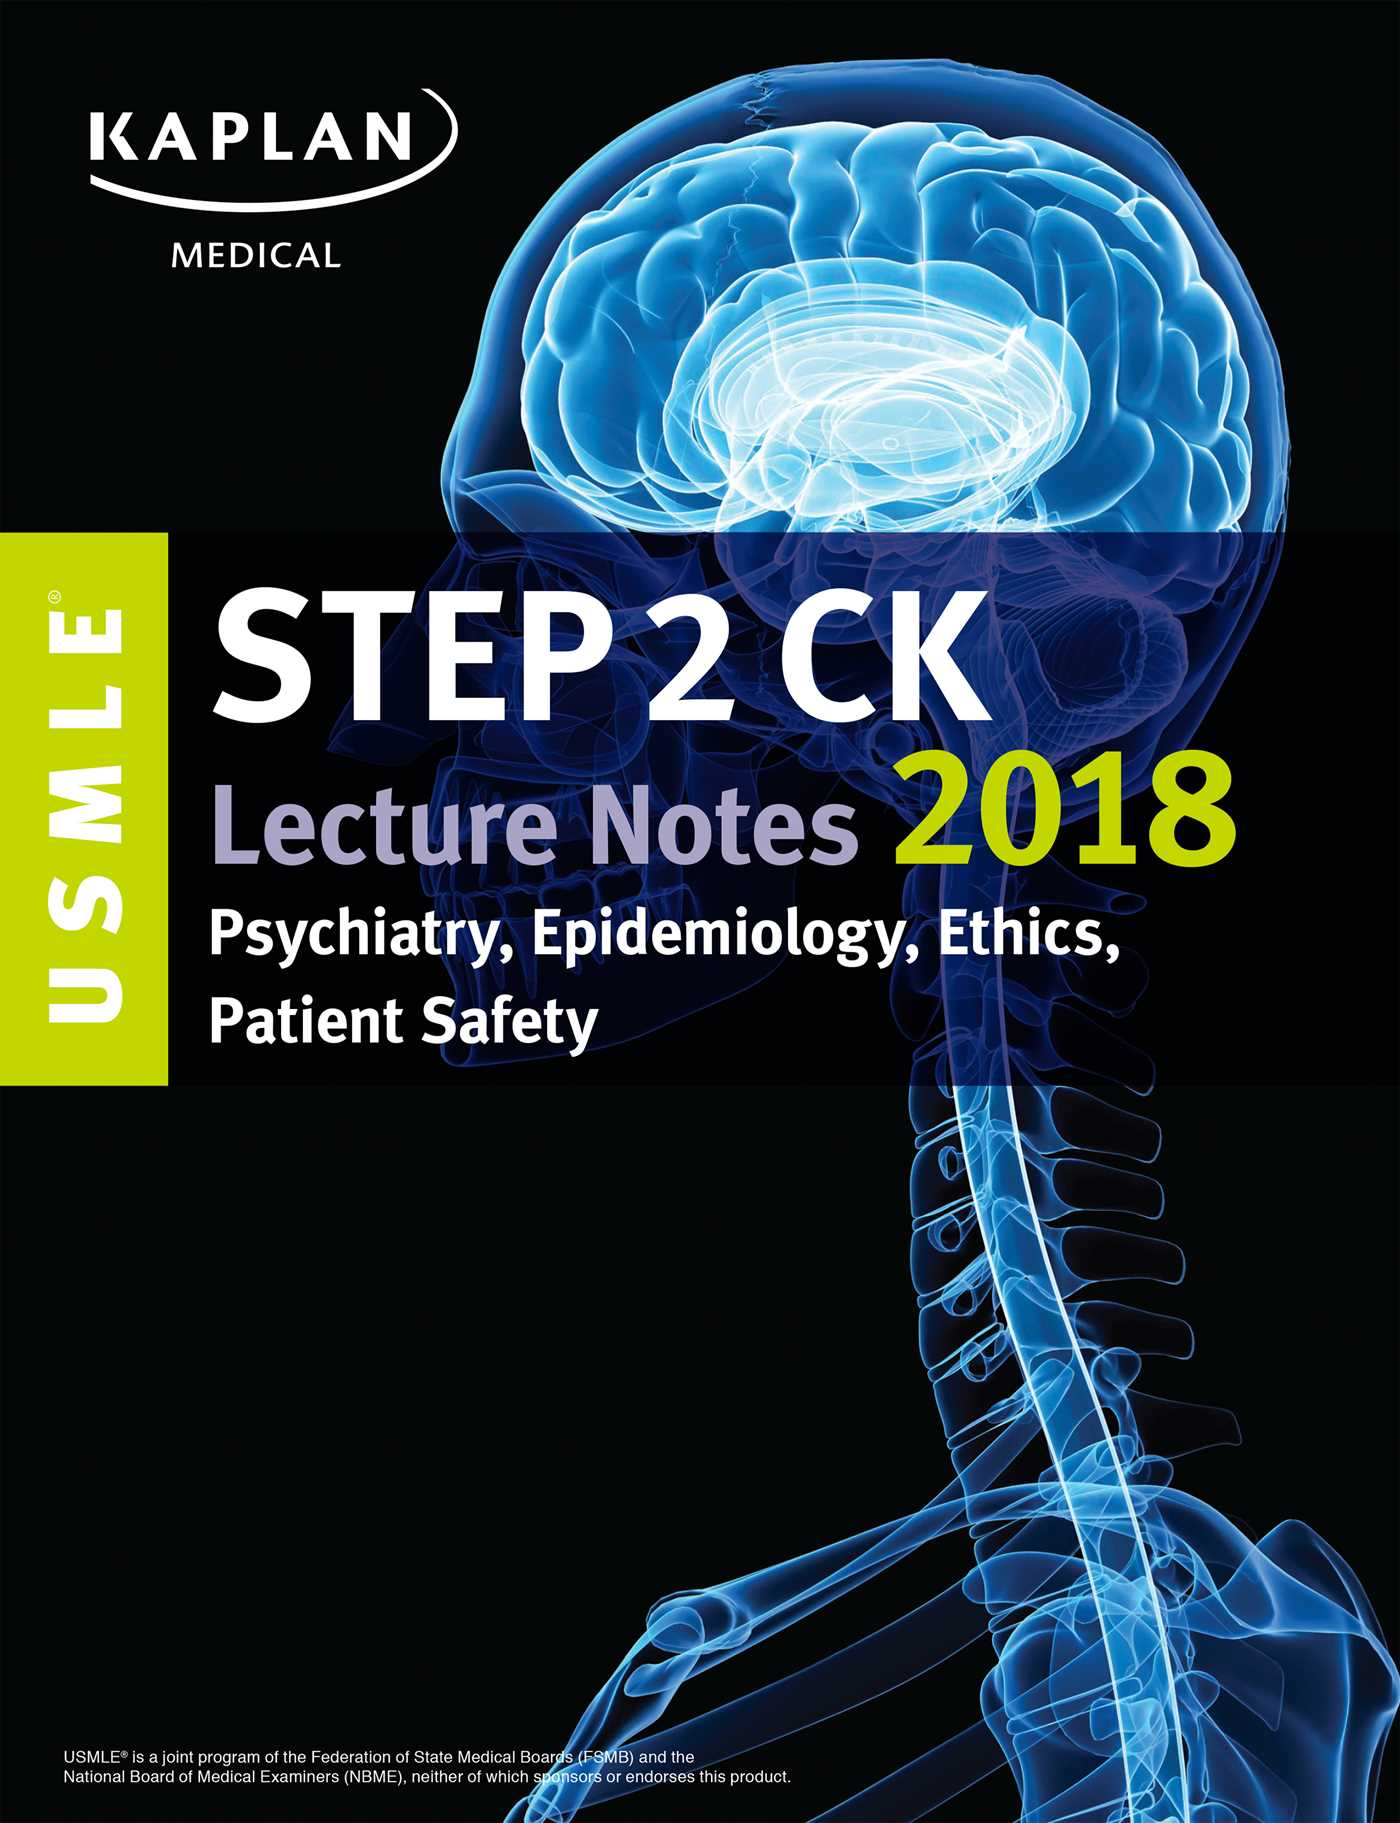 USMLE Step 2 CK Kaplan Lecture Notes Psychiatry, Epidemiology, Ethics, Patient Safety 2018 PDF